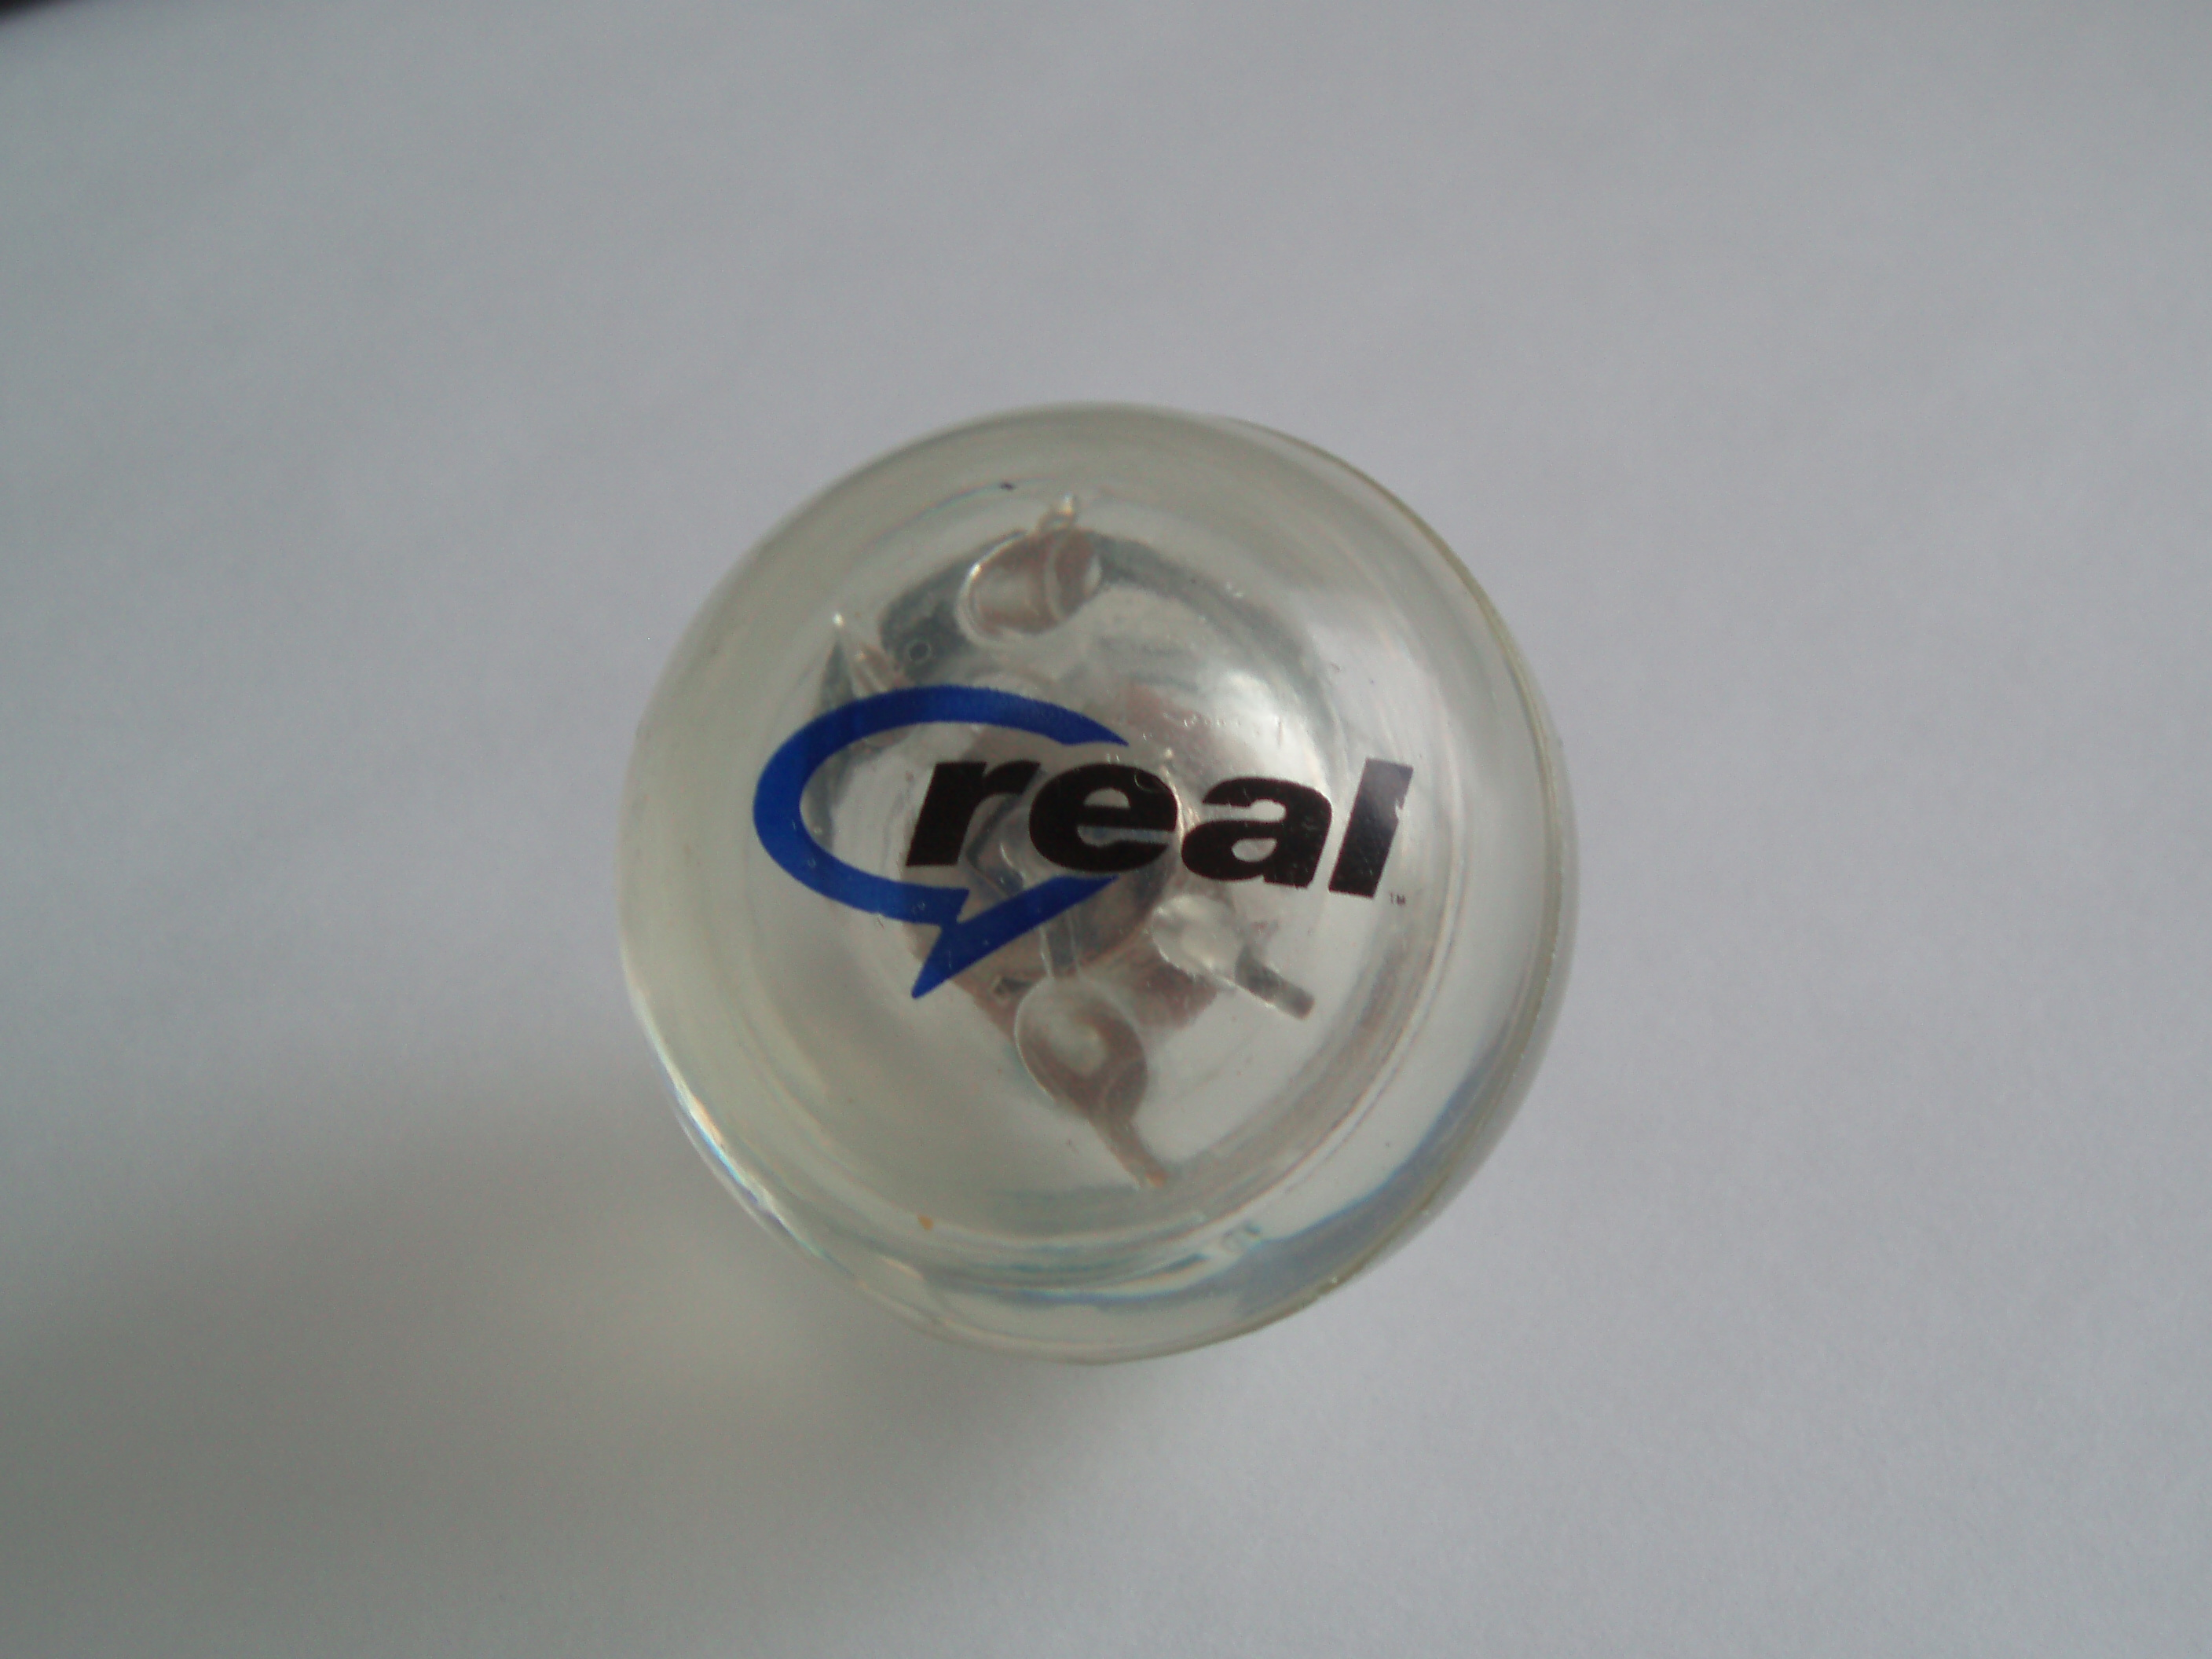 Promotional merchandise with the RealNetworks logo